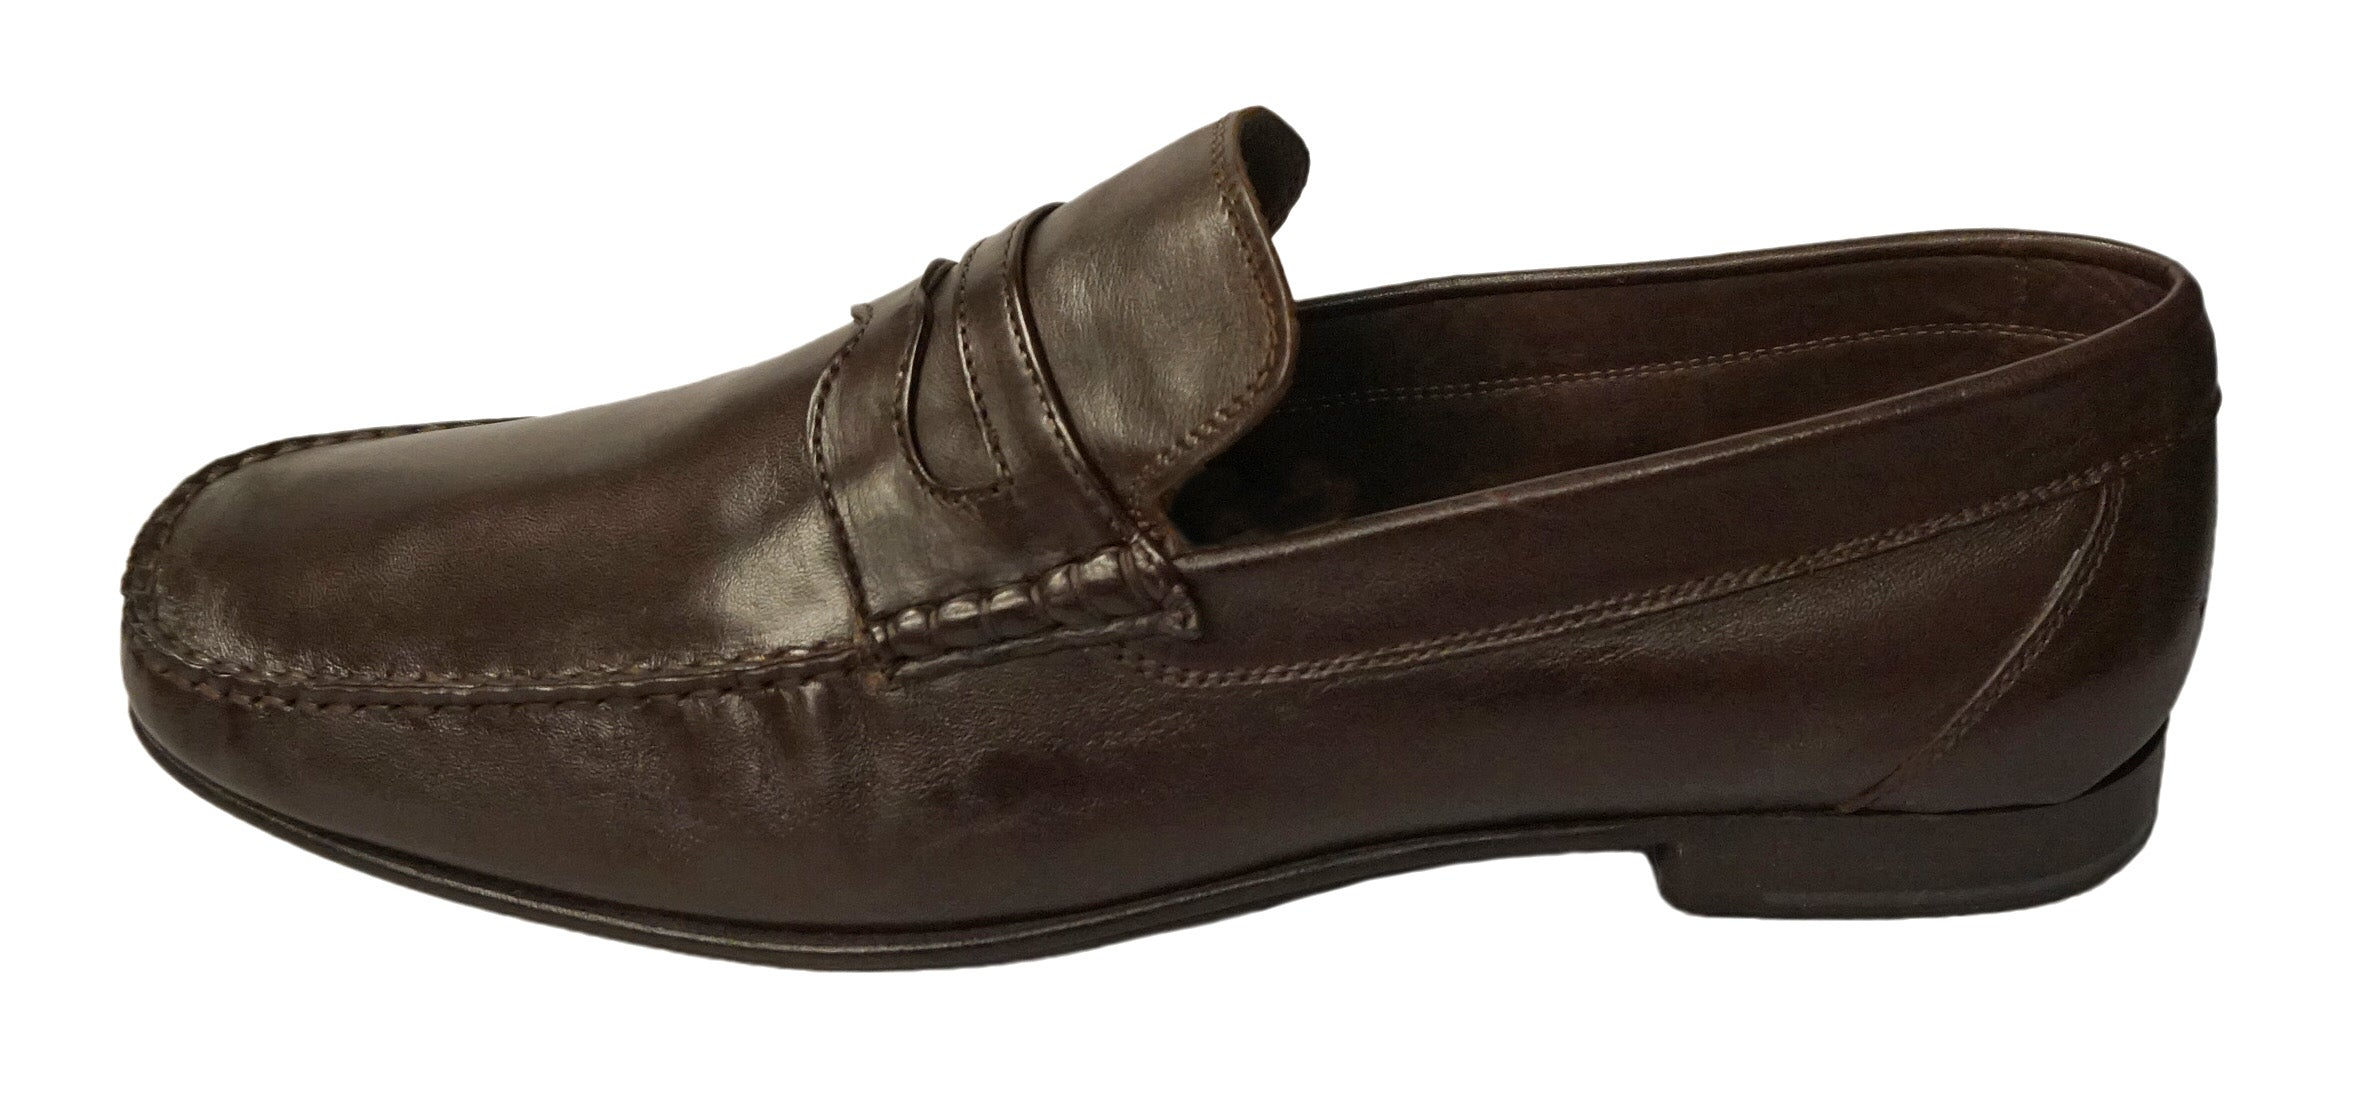 Calzoleria Toscana (Large Shoes) Brown Italian Loafer